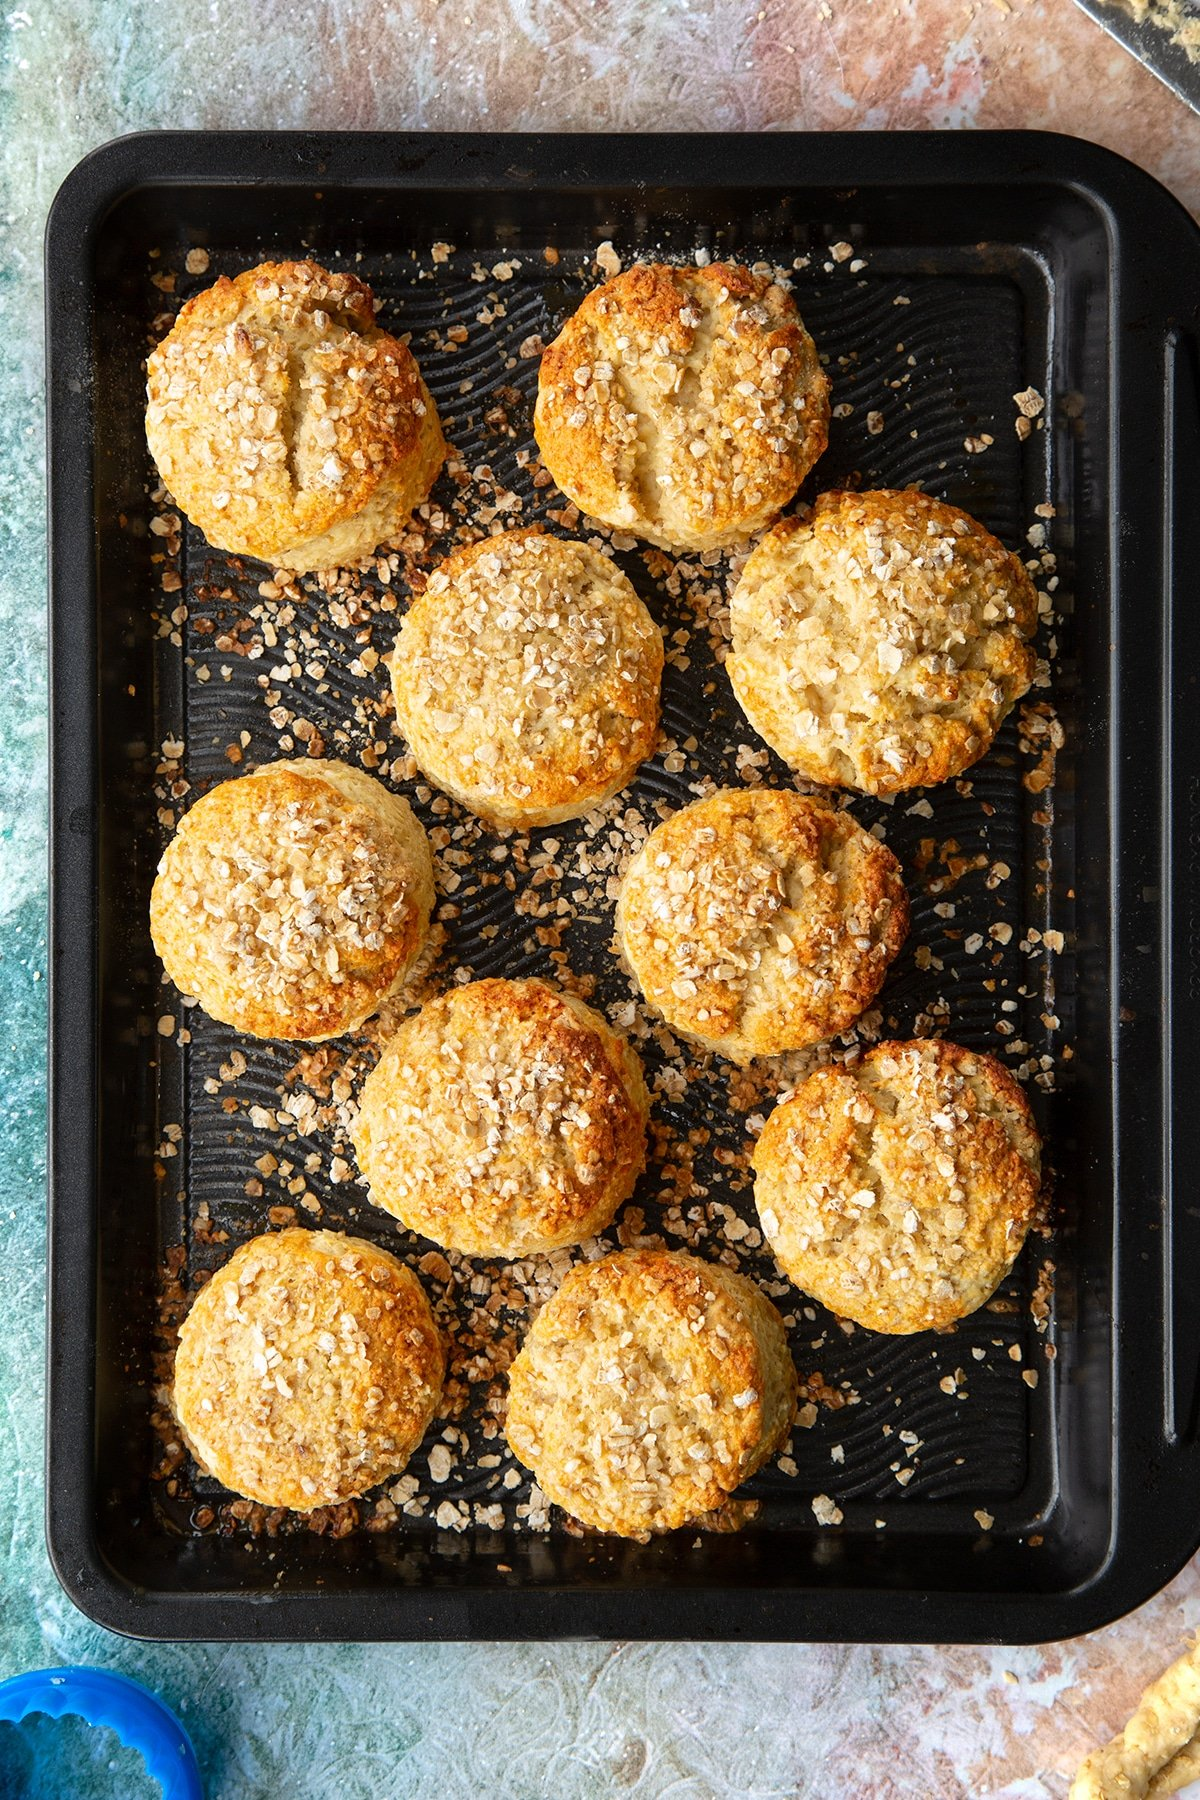 Freshly baked oatmeal scones on a baking tray.